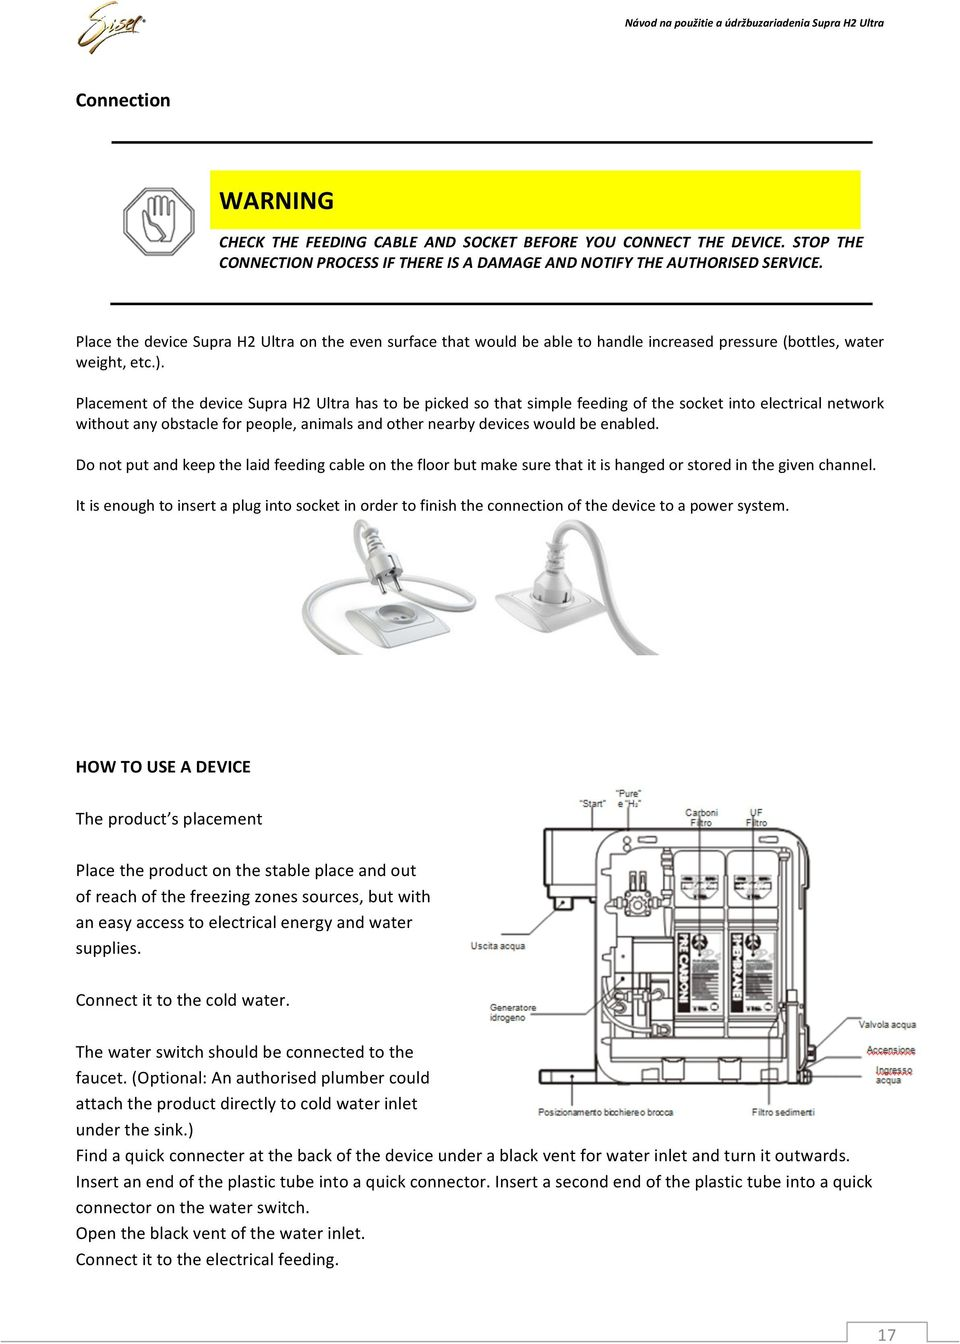 Sisel International Ag Pdf Landa Natural Gas Valve Wiring Diagram Placement Of The Device Supra H2 Ultra Has To Be Picked So That Simple Feeding